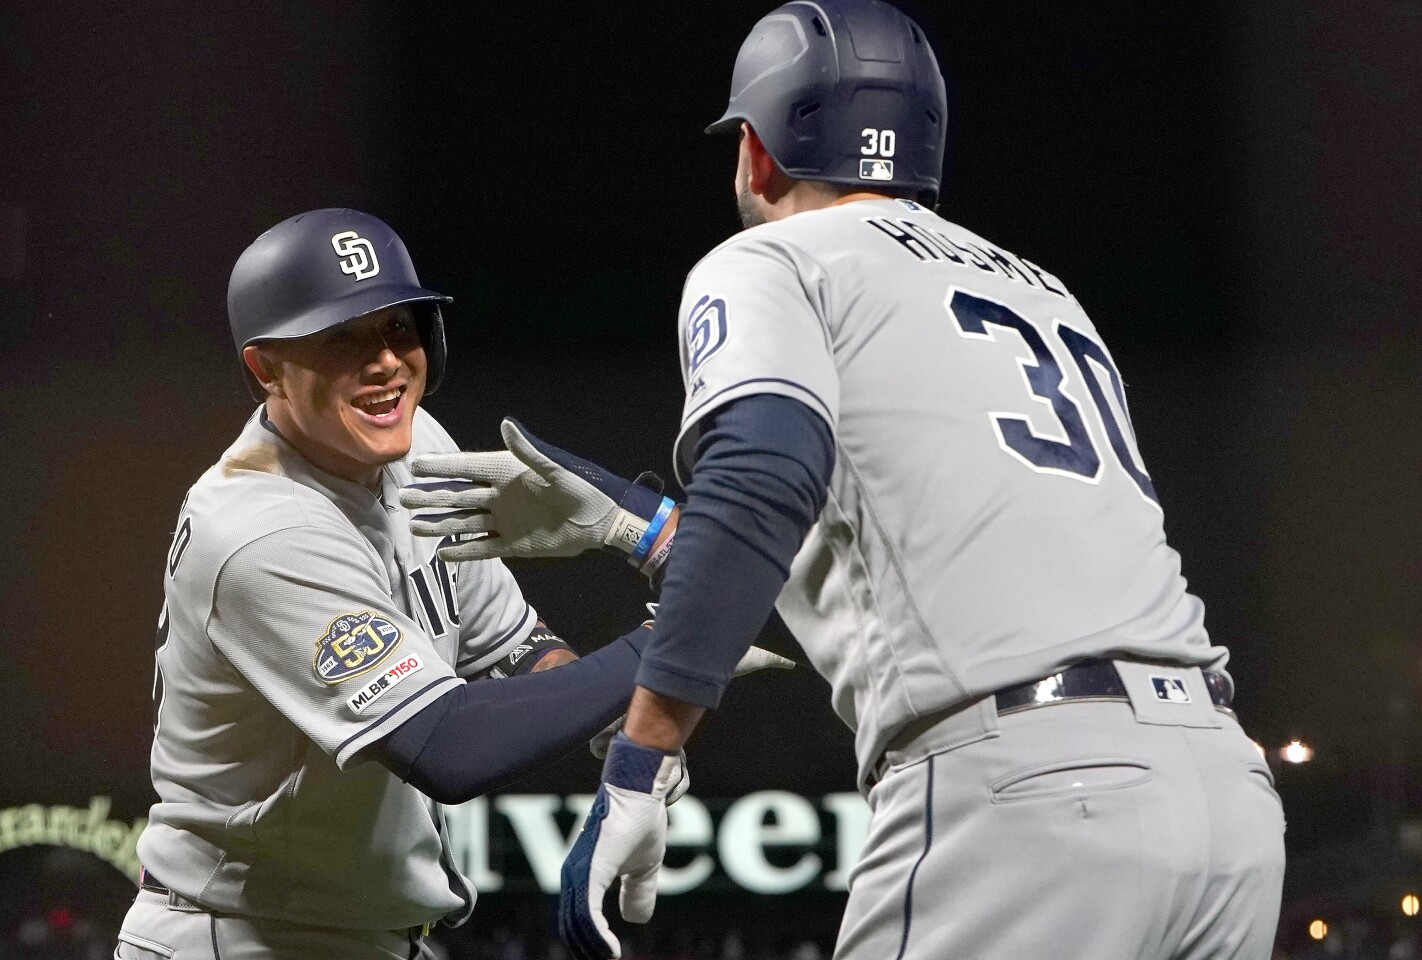 SAN FRANCISCO, CA - AUGUST 30: Manny Machado #13 of the San Diego Padres is congratulated by Eric Hosmer #30 after Machado hit a solo home run against the San Francisco Giants in the top of the fourth inning at Oracle Park on August 30, 2019 in San Francisco, California. (Photo by Thearon W. Henderson/Getty Images) ** OUTS - ELSENT, FPG, CM - OUTS * NM, PH, VA if sourced by CT, LA or MoD **